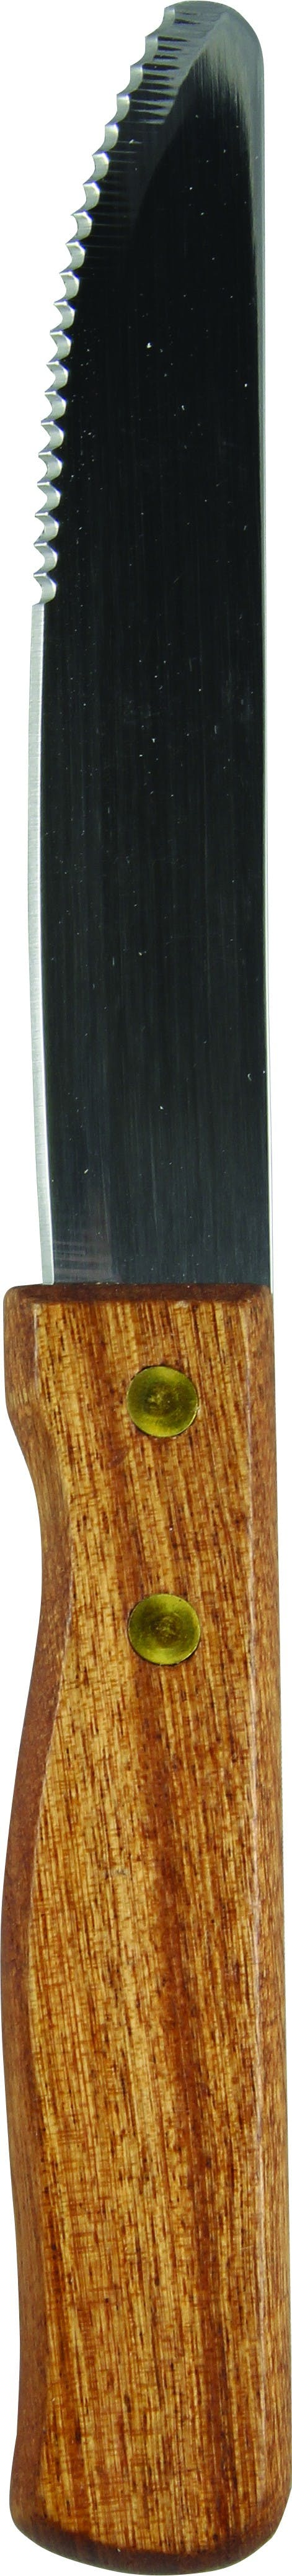 """9.875"""" Round Tip Steak Knife with Rosewood Handle Flatware sold by Prestige Glassware"""